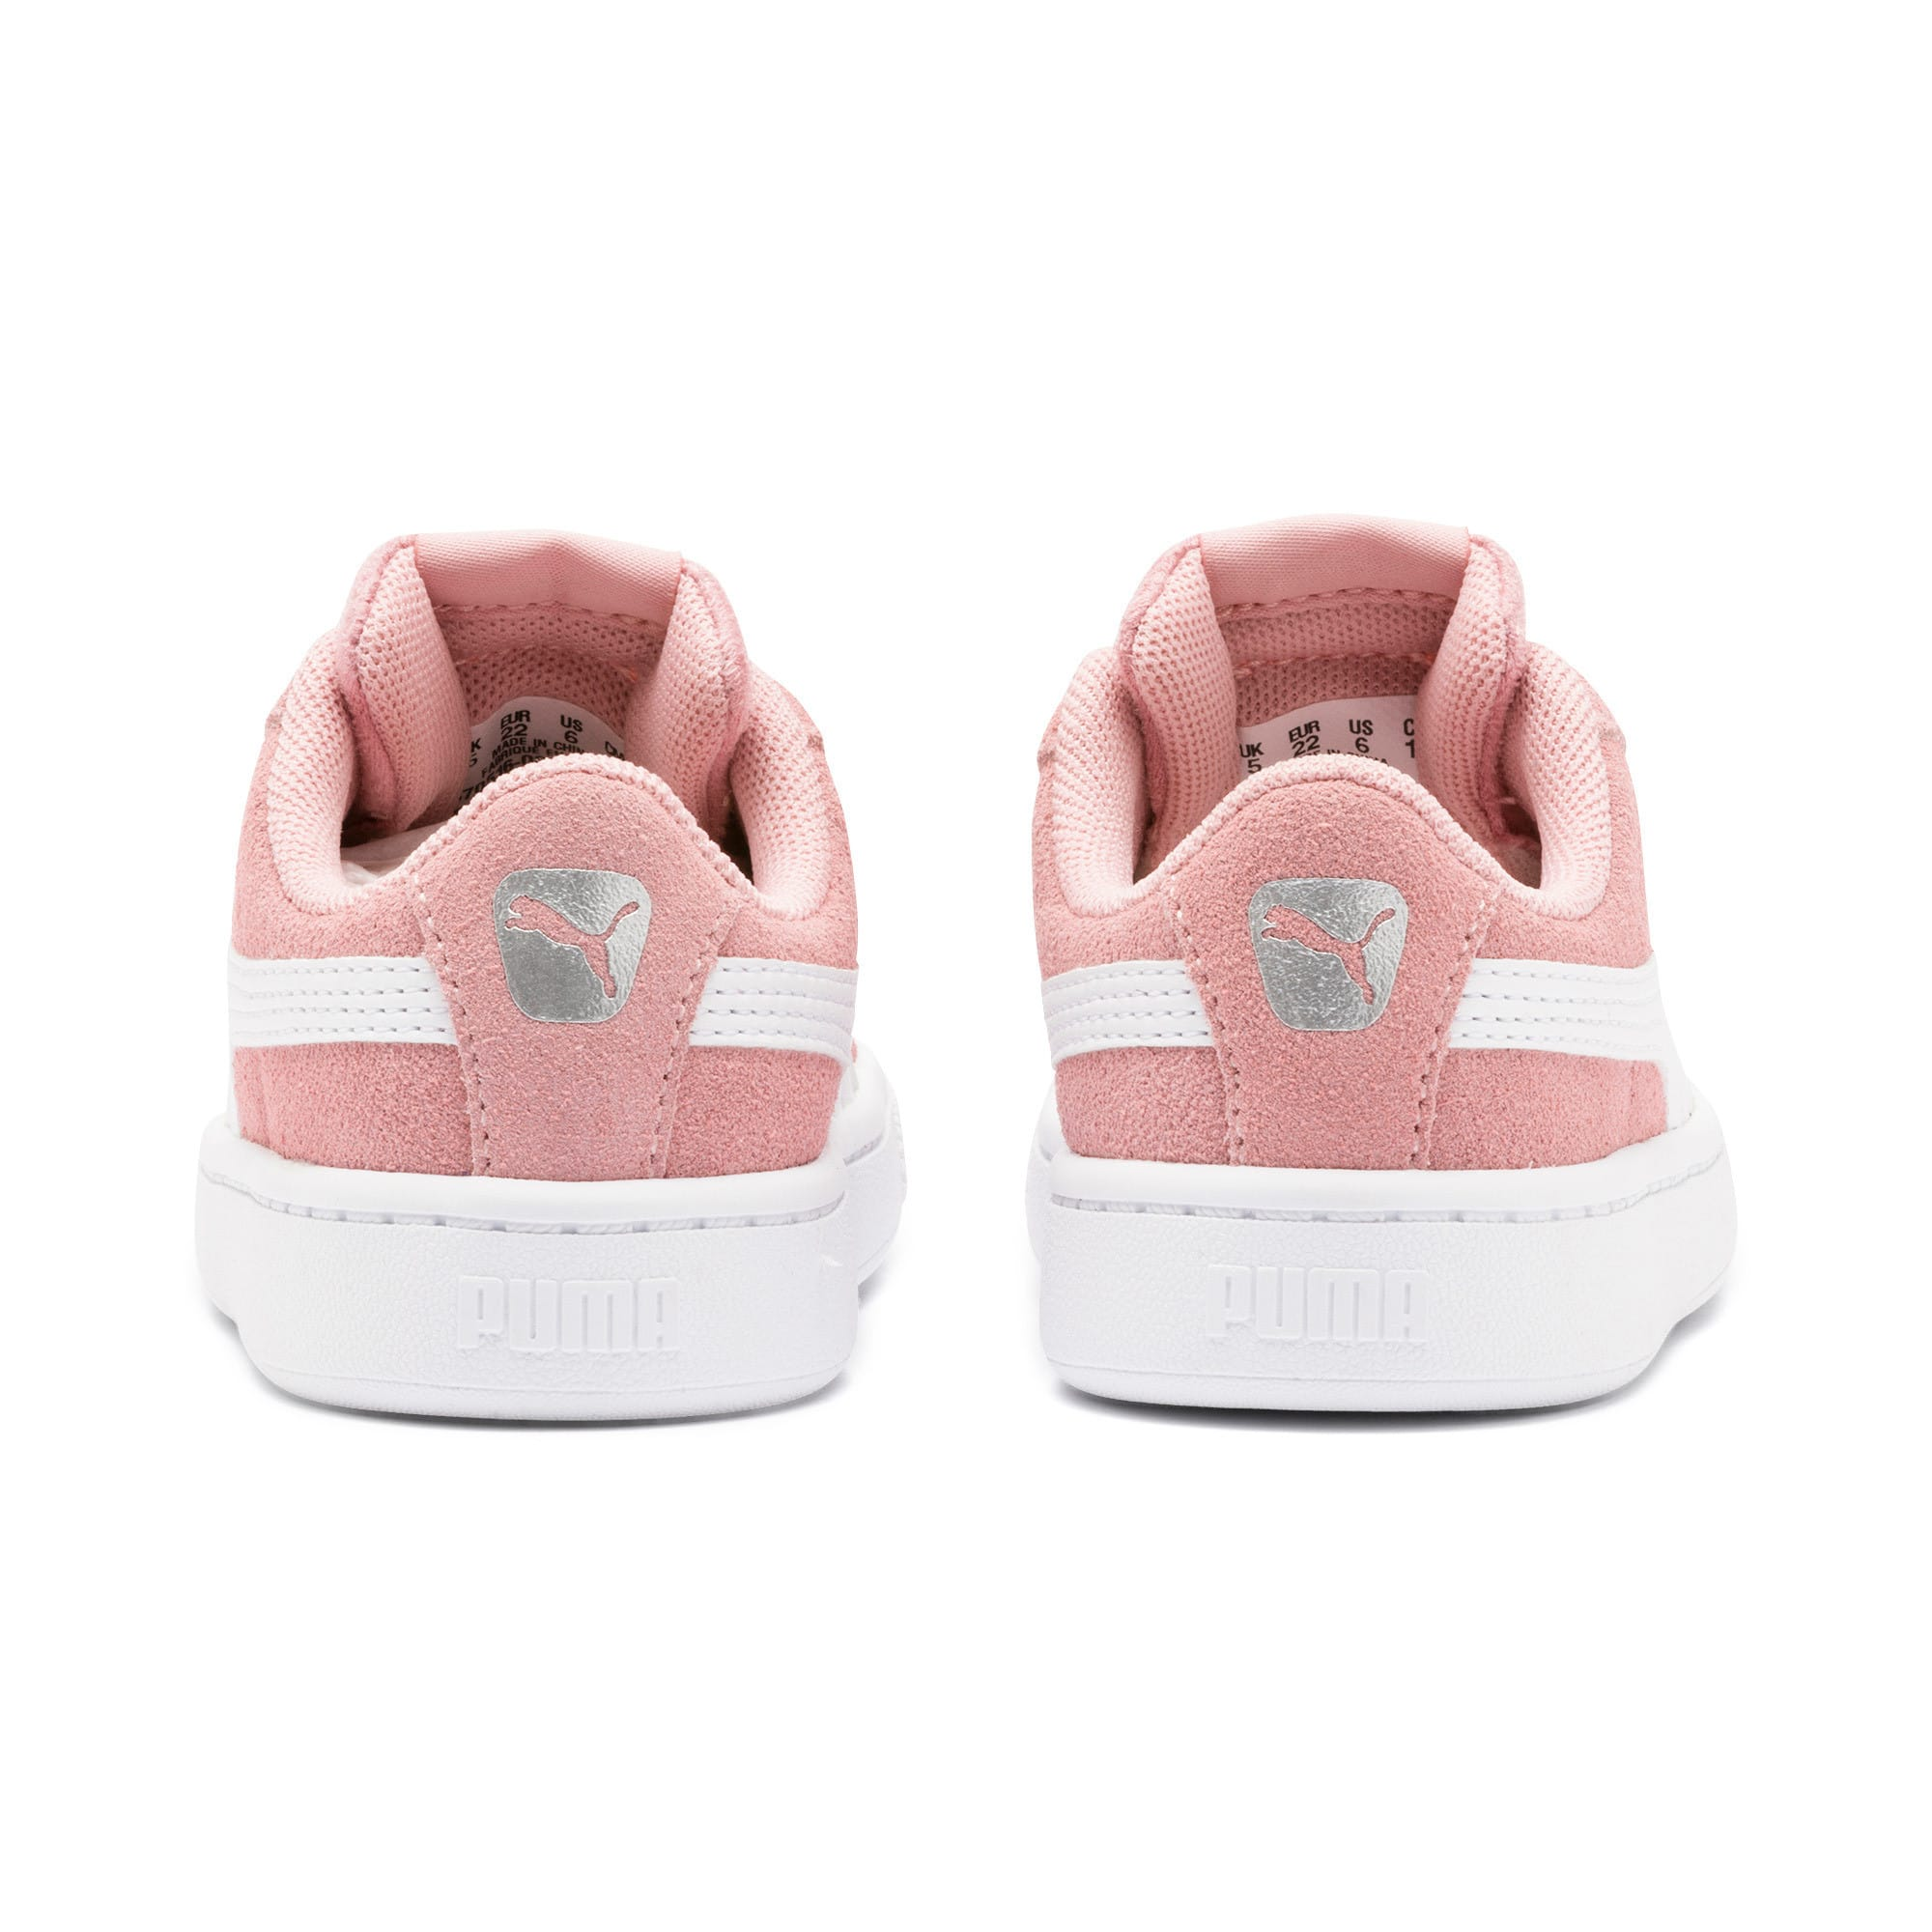 Thumbnail 3 of PUMA Vikky v2 Suede AC Sneakers INF, Bridal Rose-White-Silver, medium